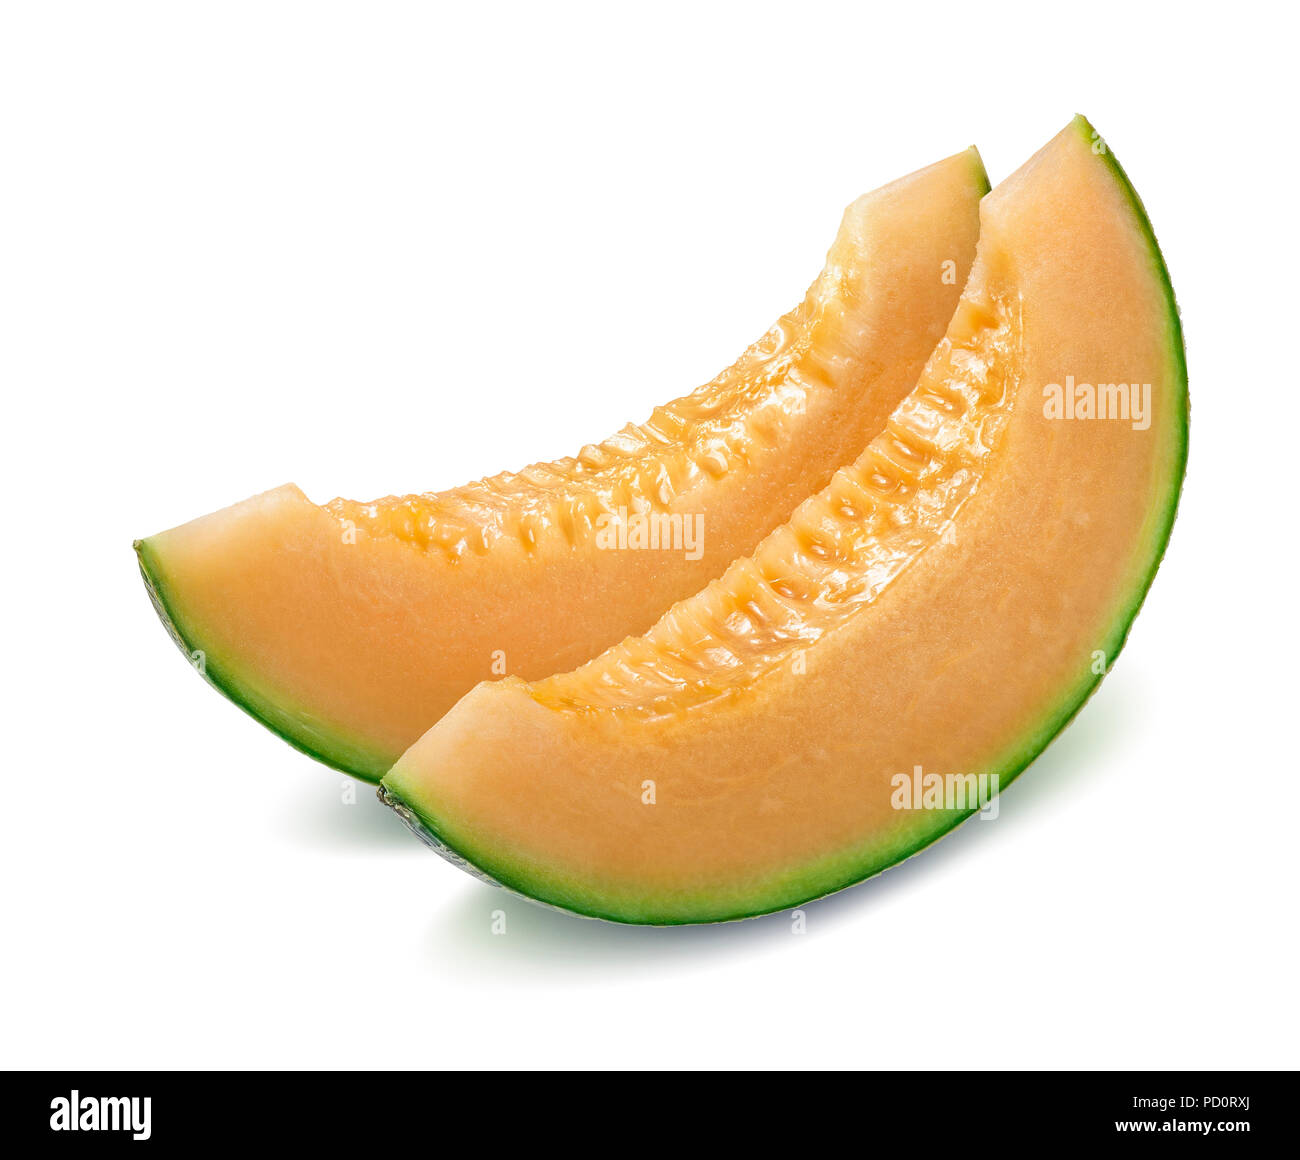 Melon cantaloupe pieces isolated on white background as package design element - Stock Image